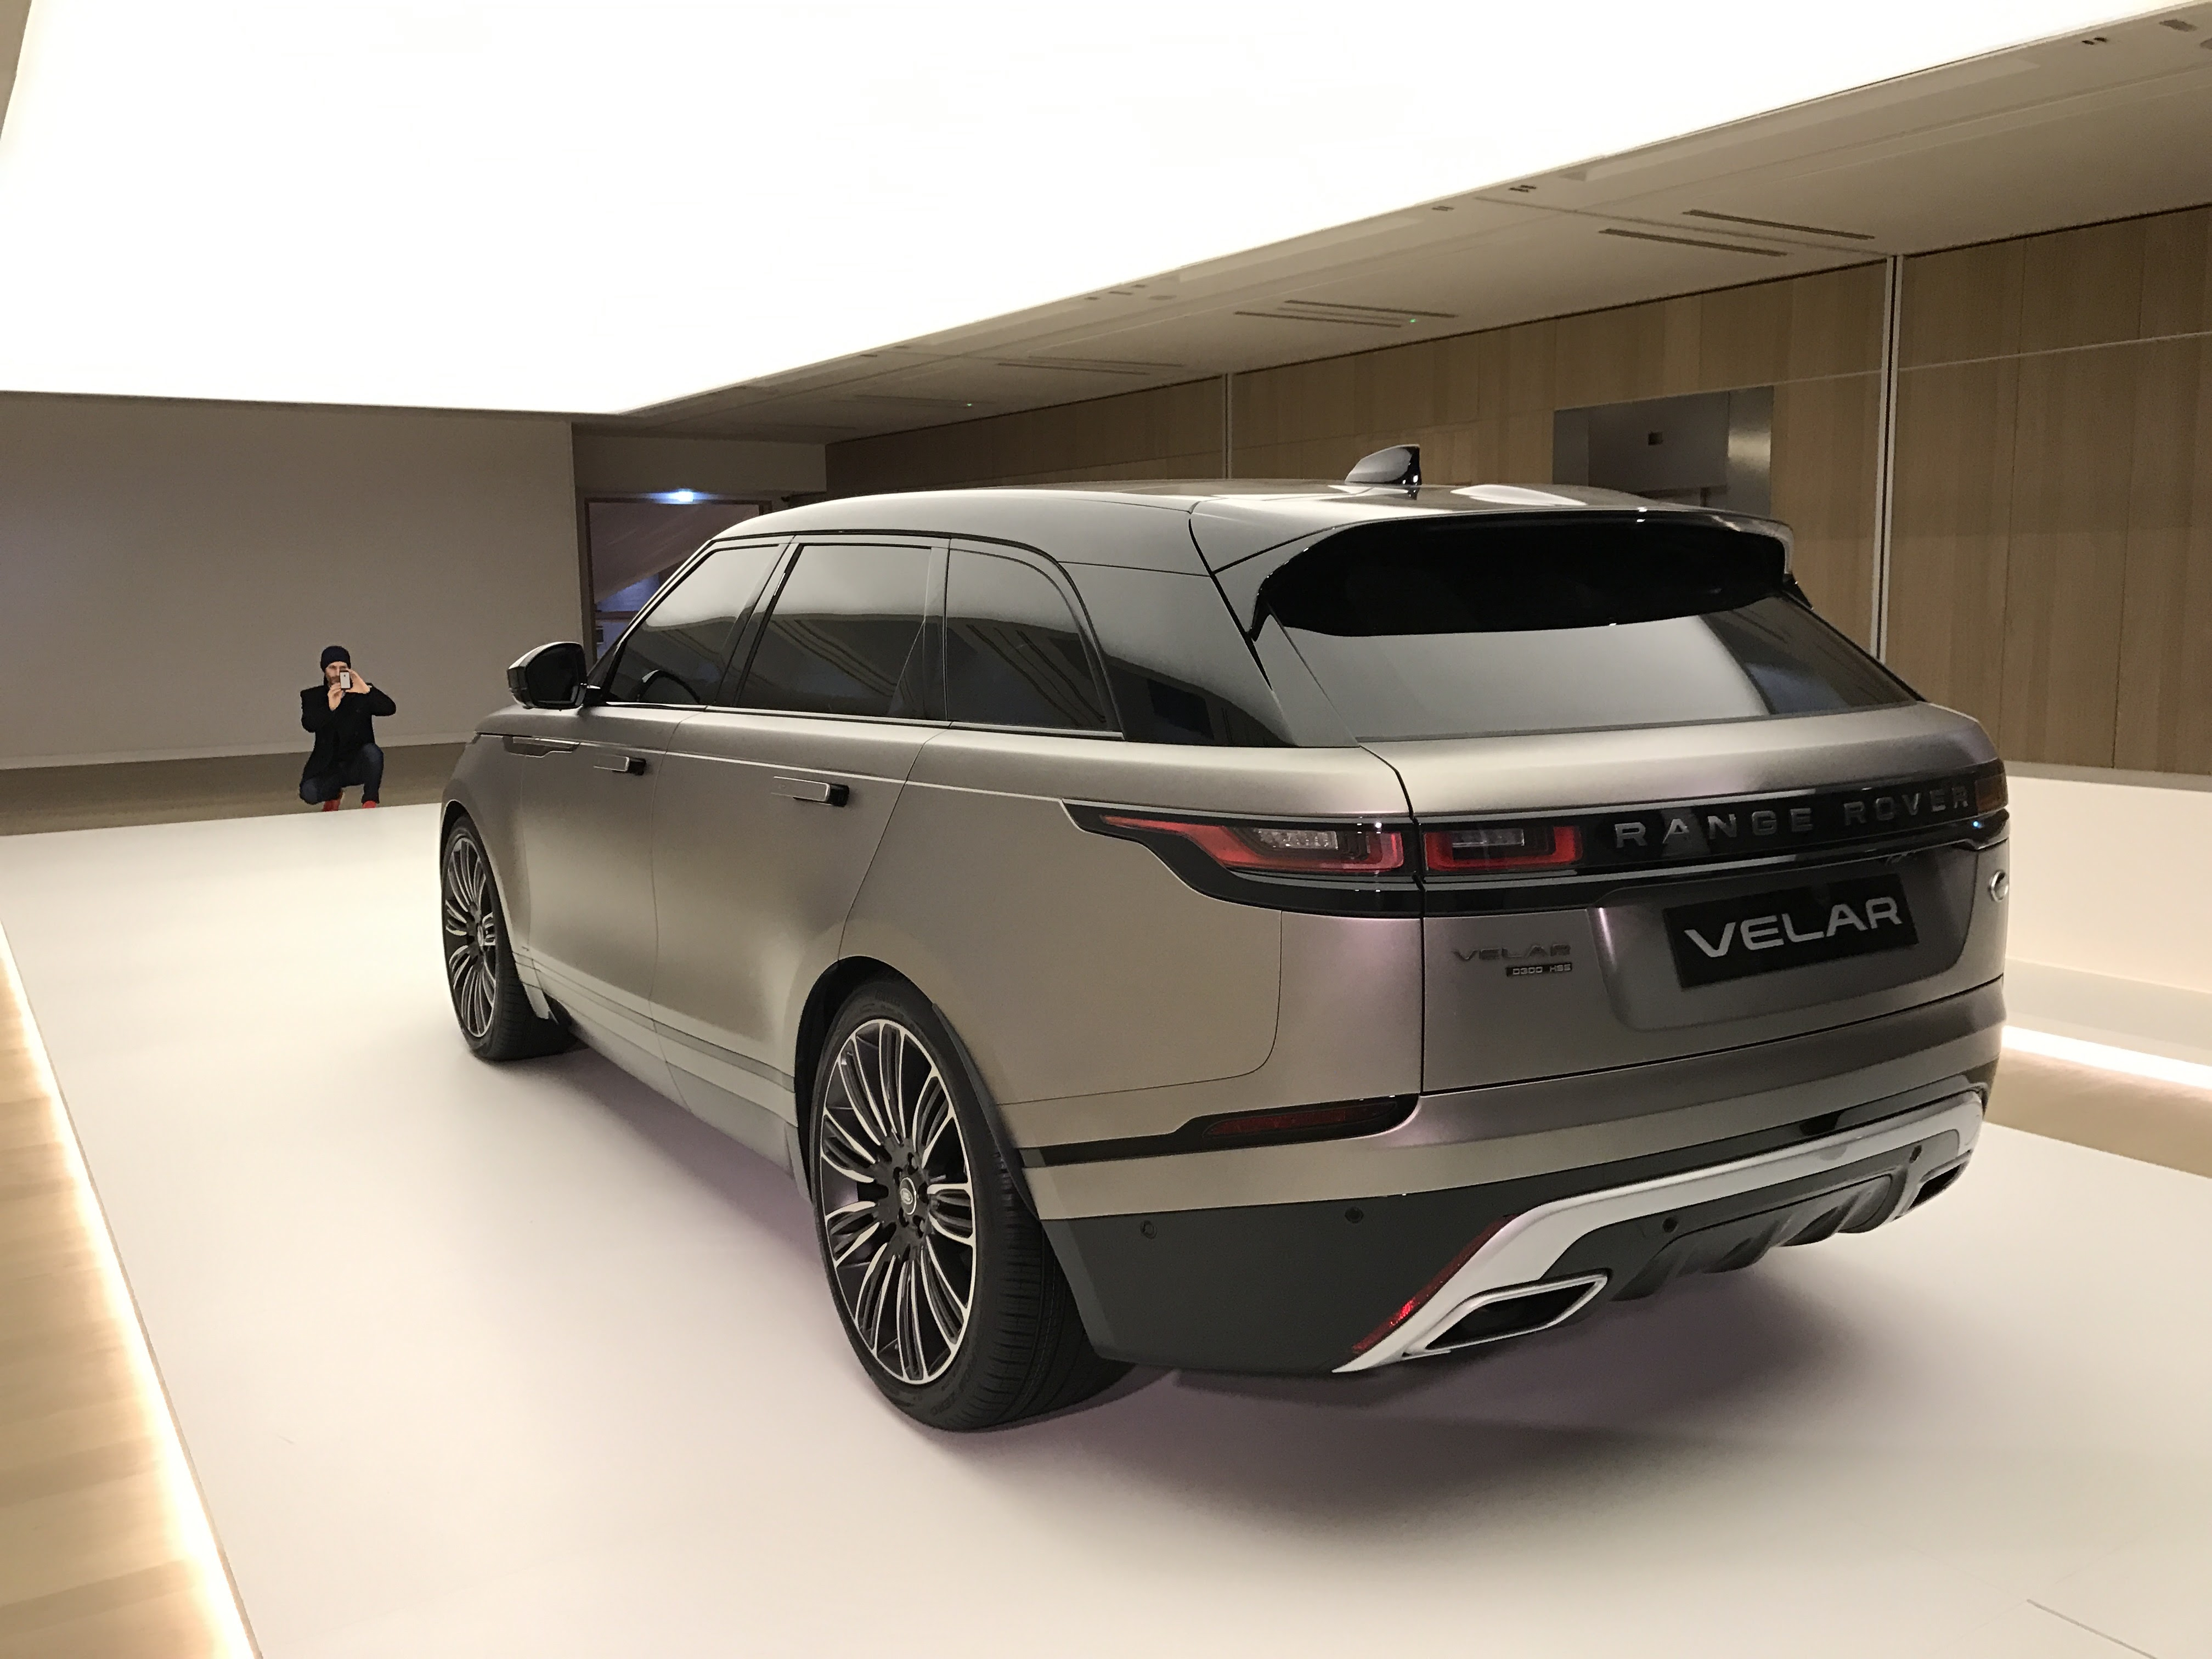 file range rover velar rear wikimedia commons. Black Bedroom Furniture Sets. Home Design Ideas